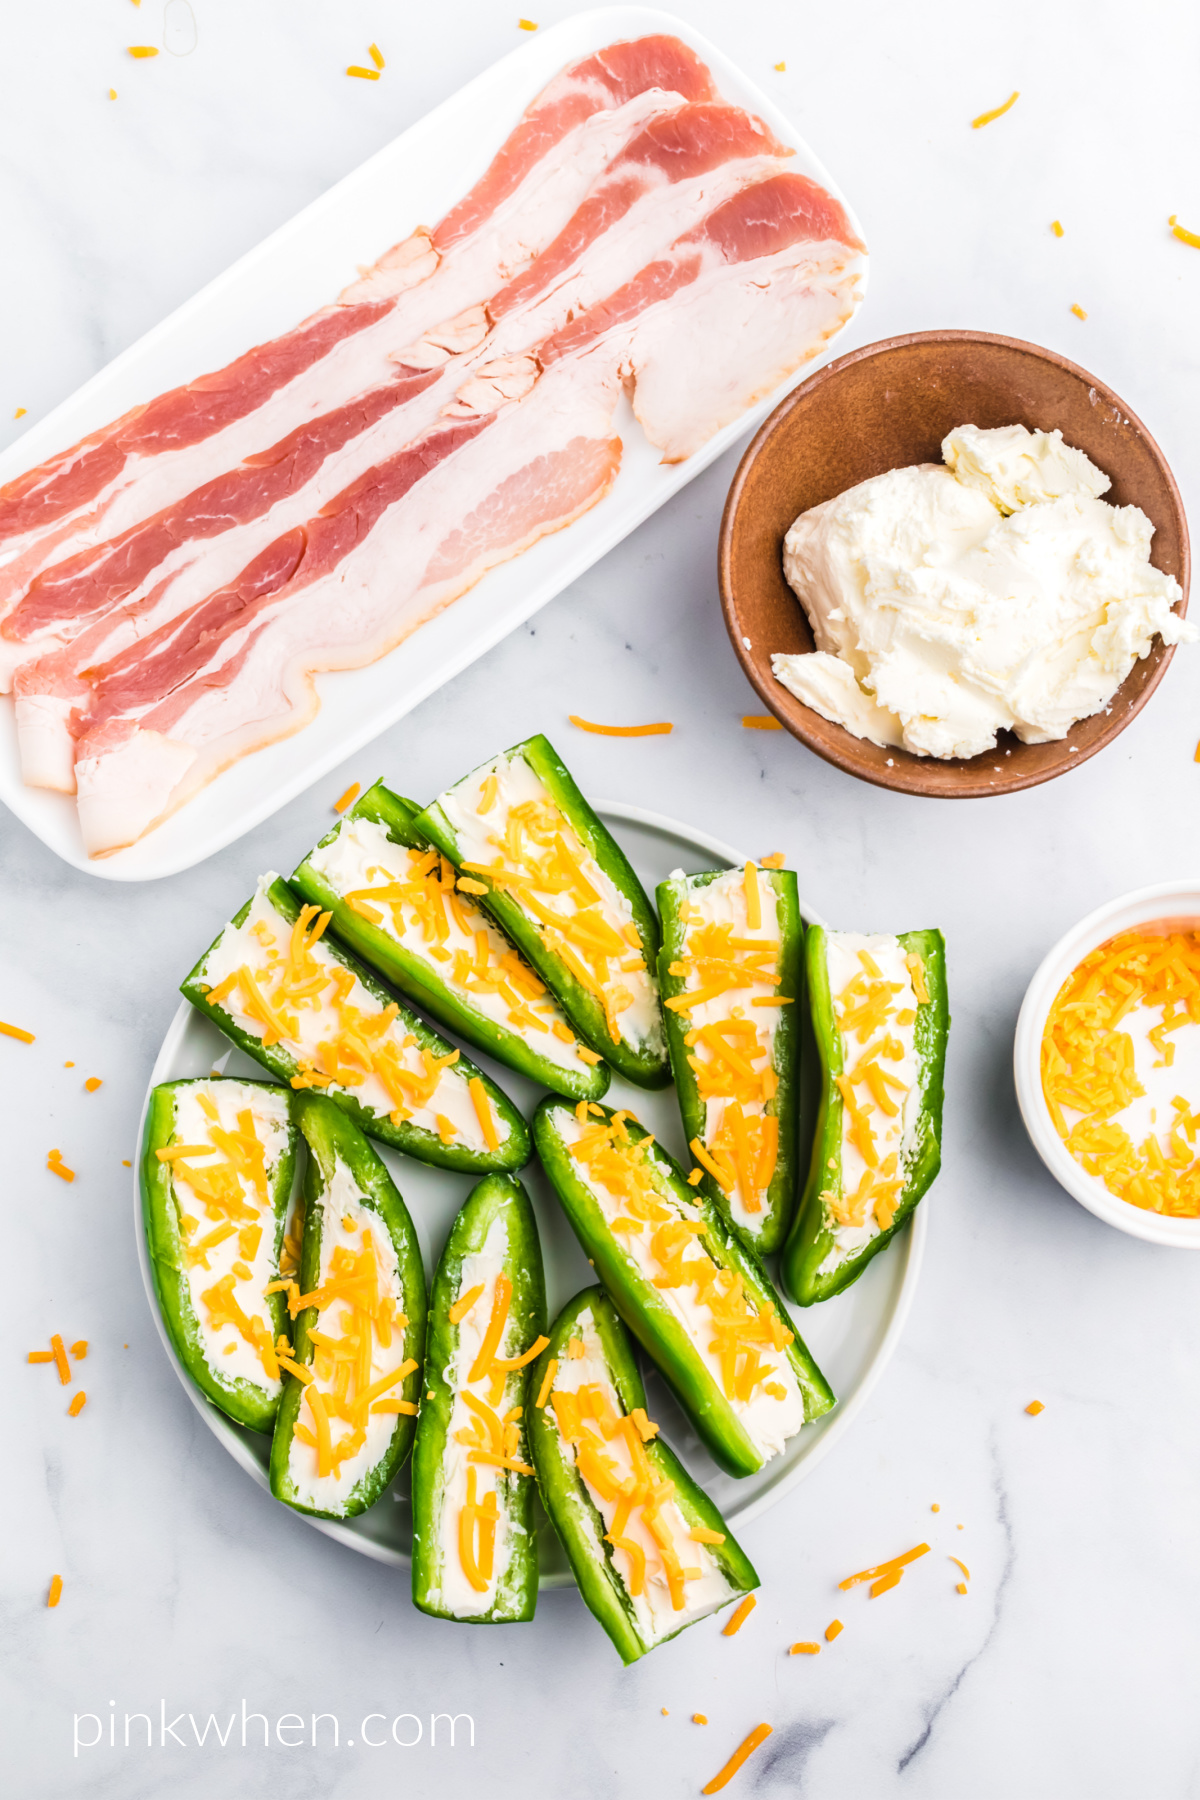 Jalapeno peppers cut lengthwise and stuffed with cream cheese and topped with cheddar cheese.